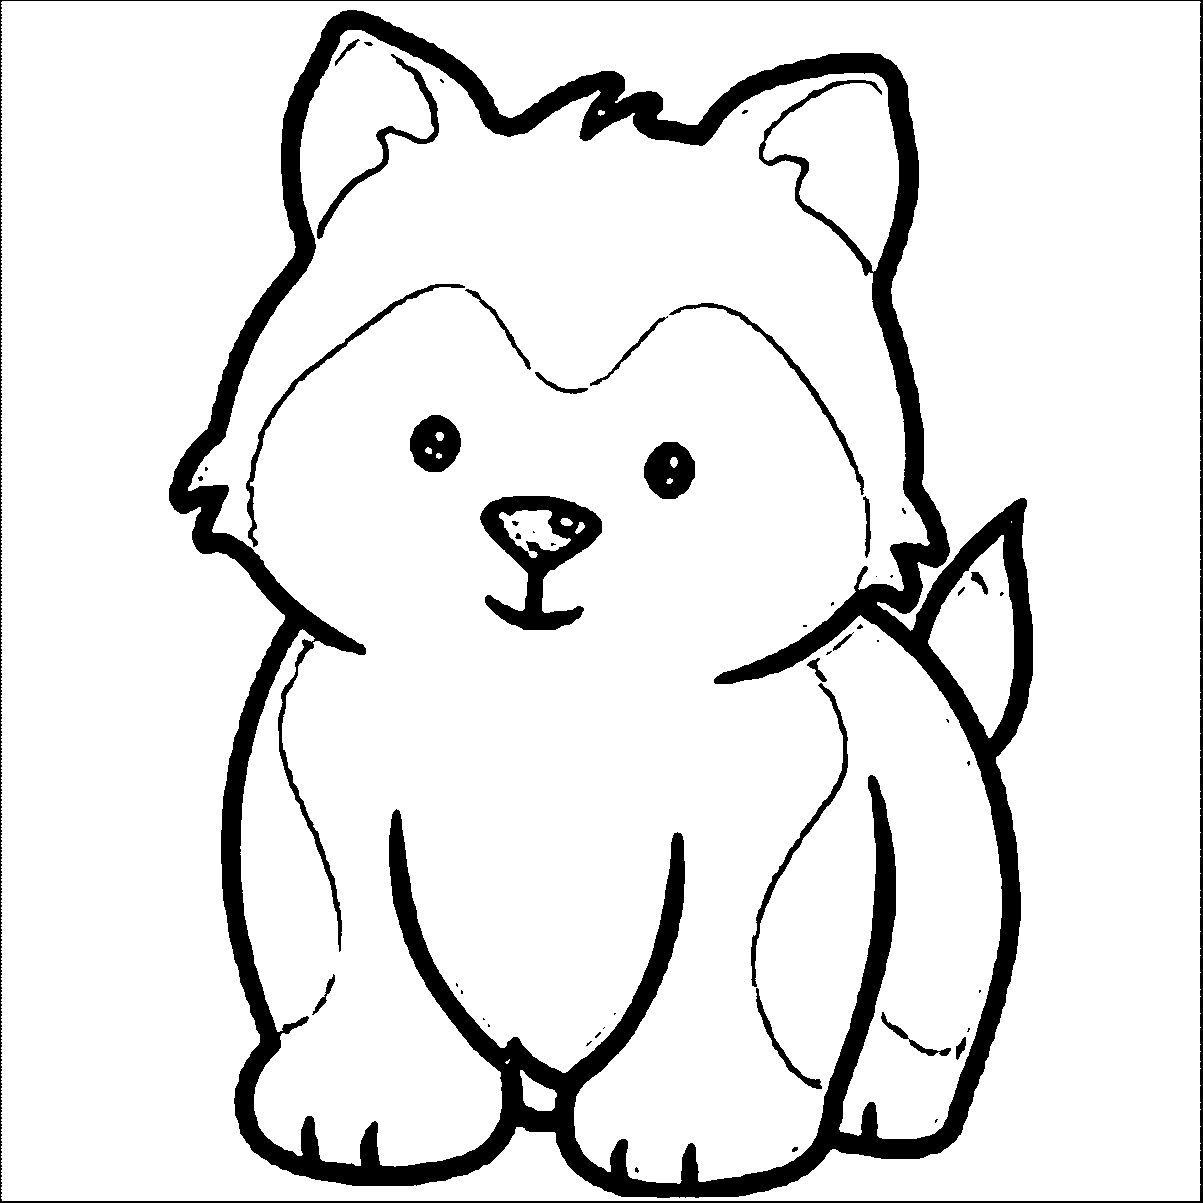 Husky Puppy Coloring Pages Printable Puppy coloring